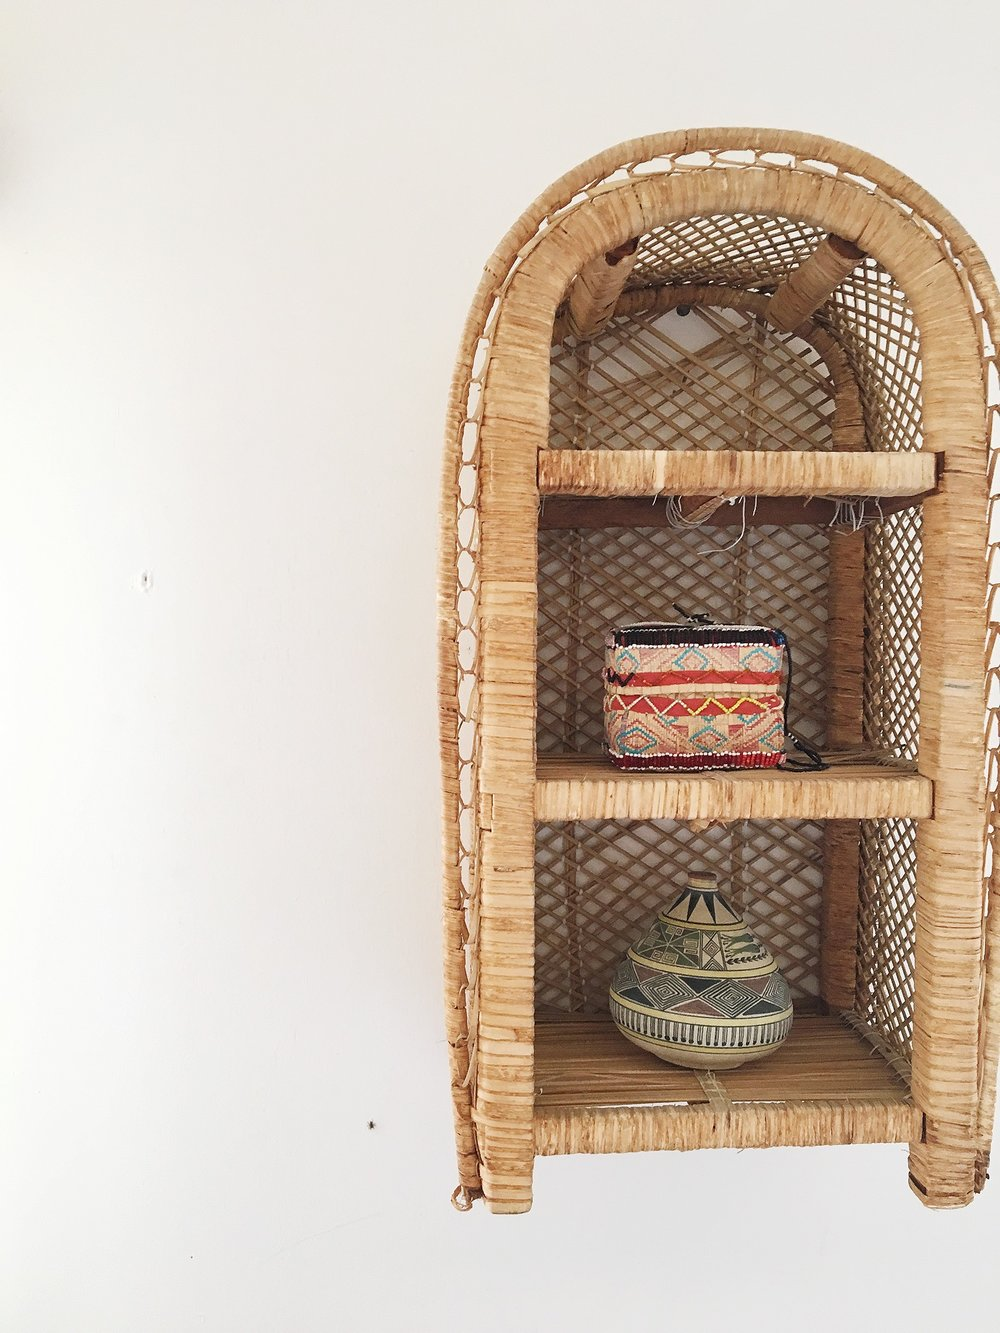 California Boho Modern Style Baskets on walls